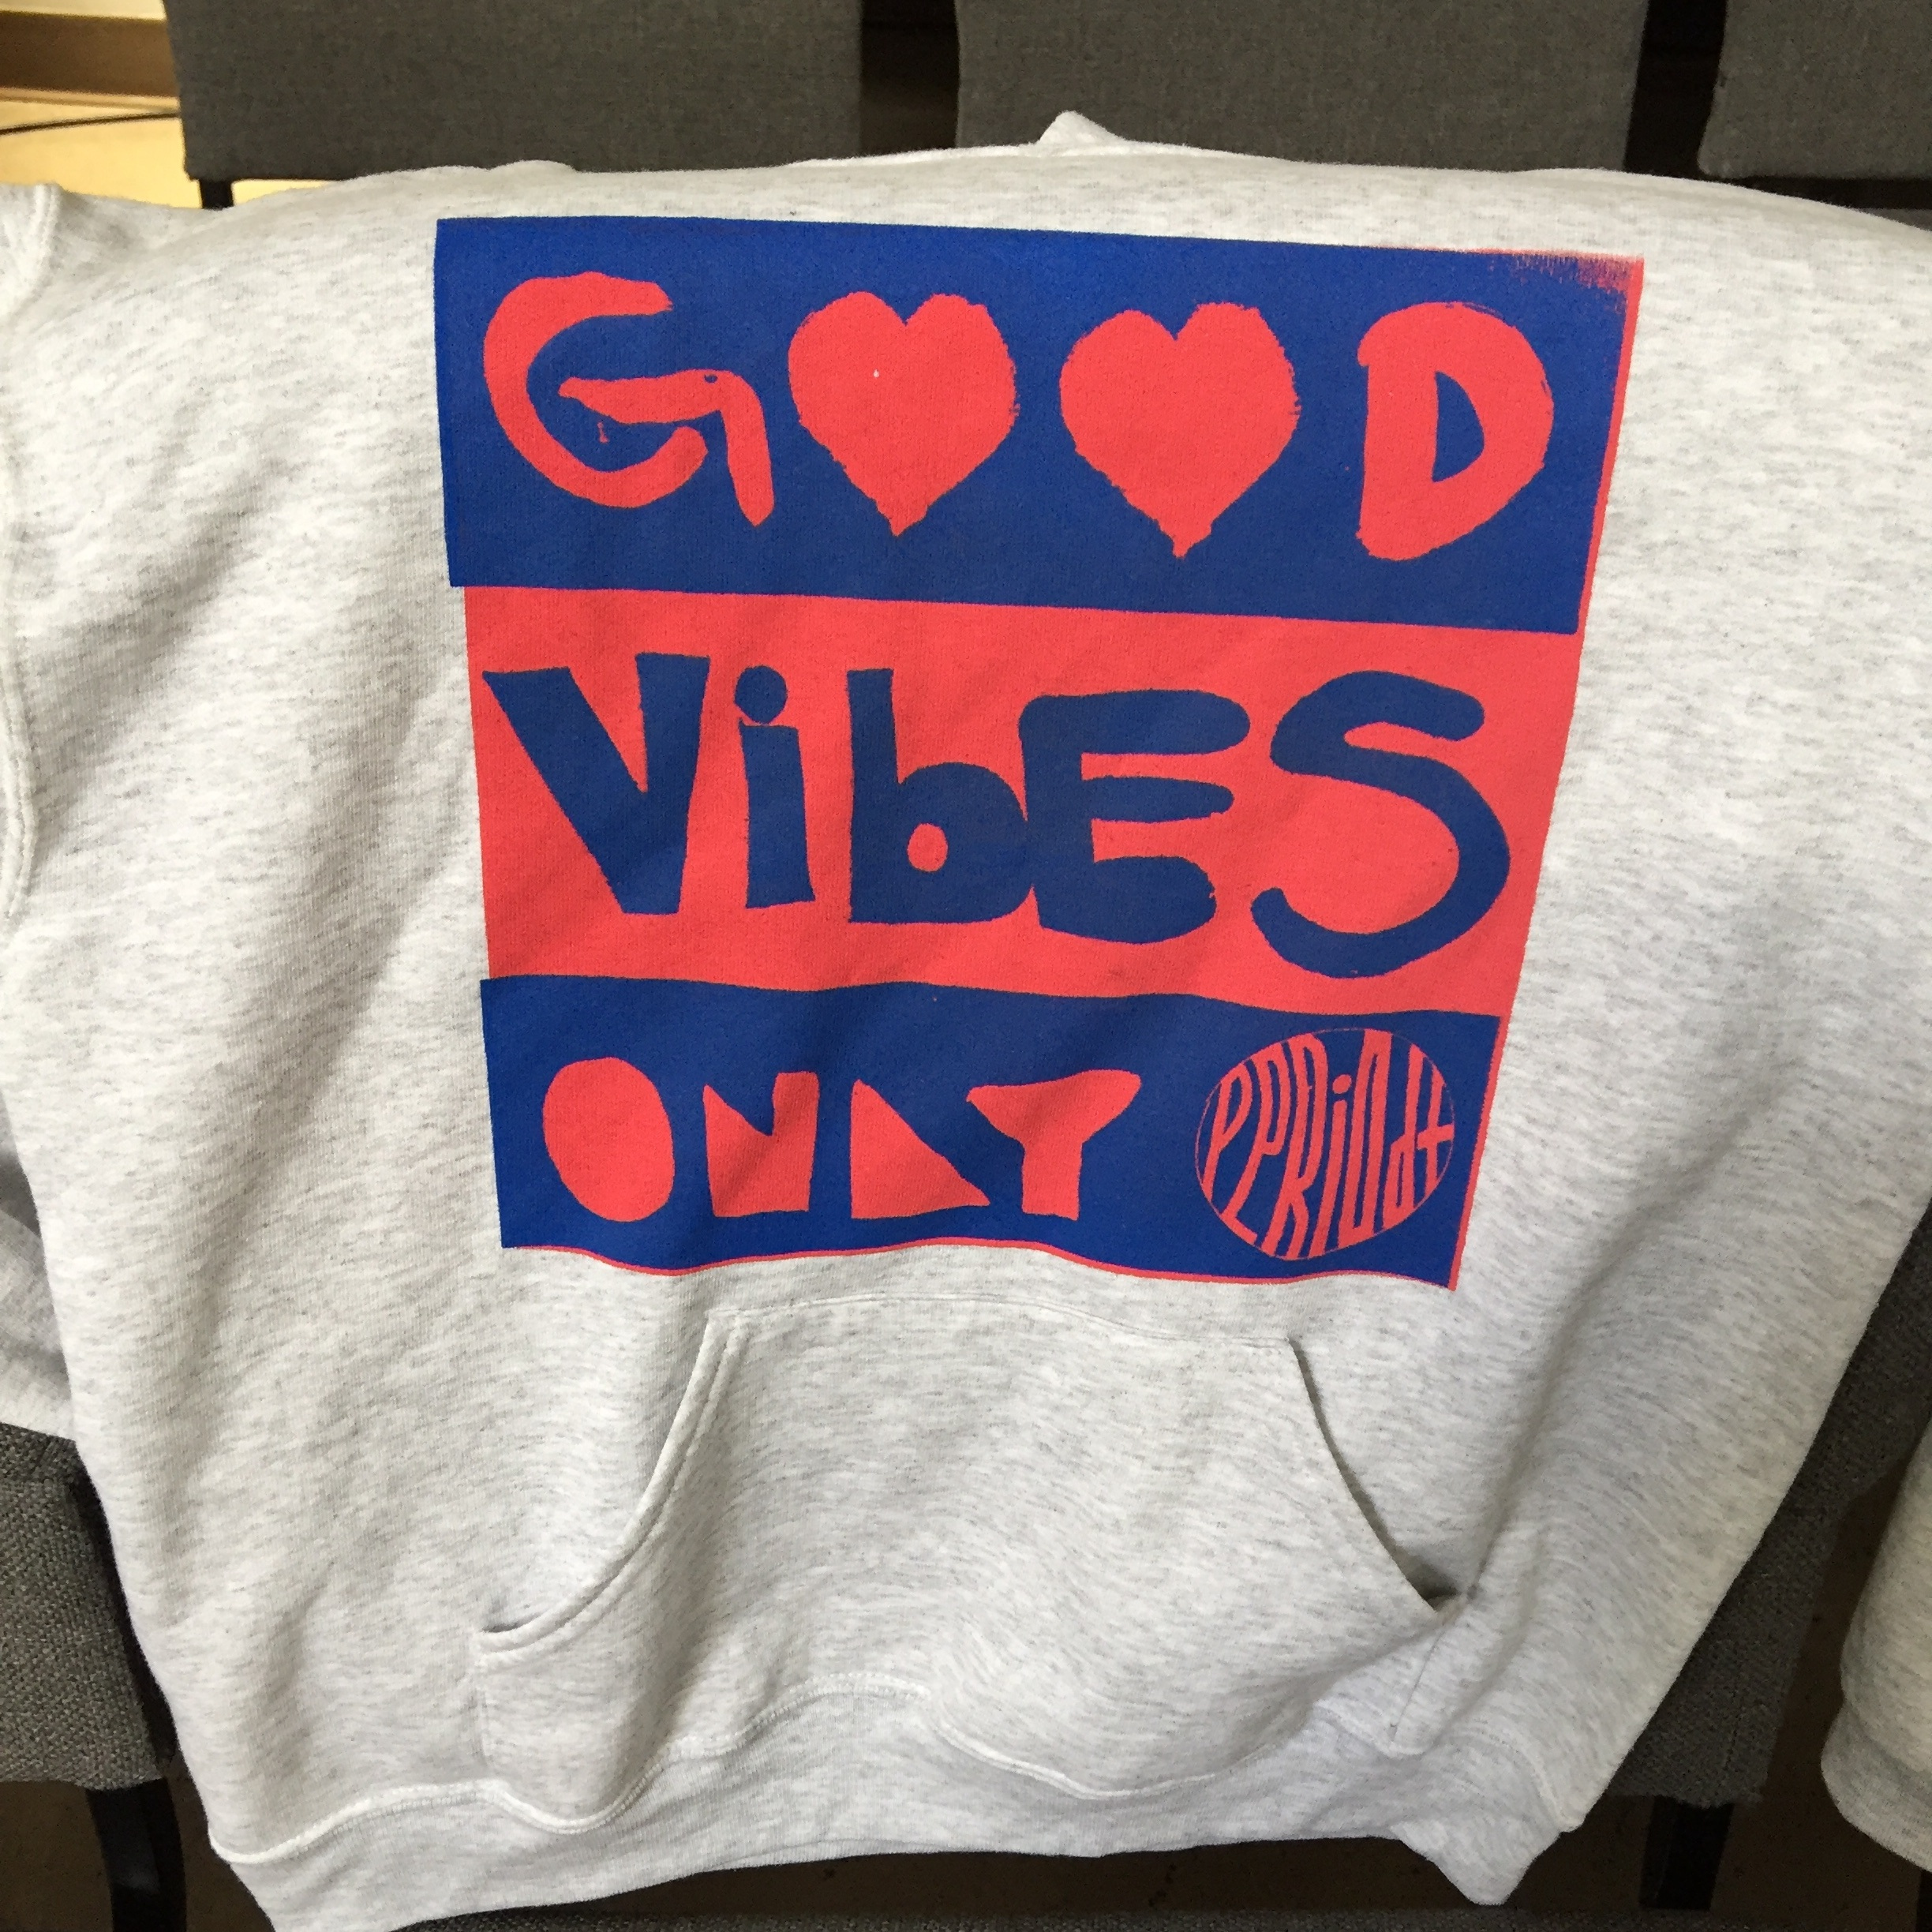 """Good Vibes Only $20 - Tired of drama? Negativity? R CITY Junior High youth were too! This spring they created our """"Good Vibes Only - Periodt"""" design to show how they wanted to live: focused on the positive!"""